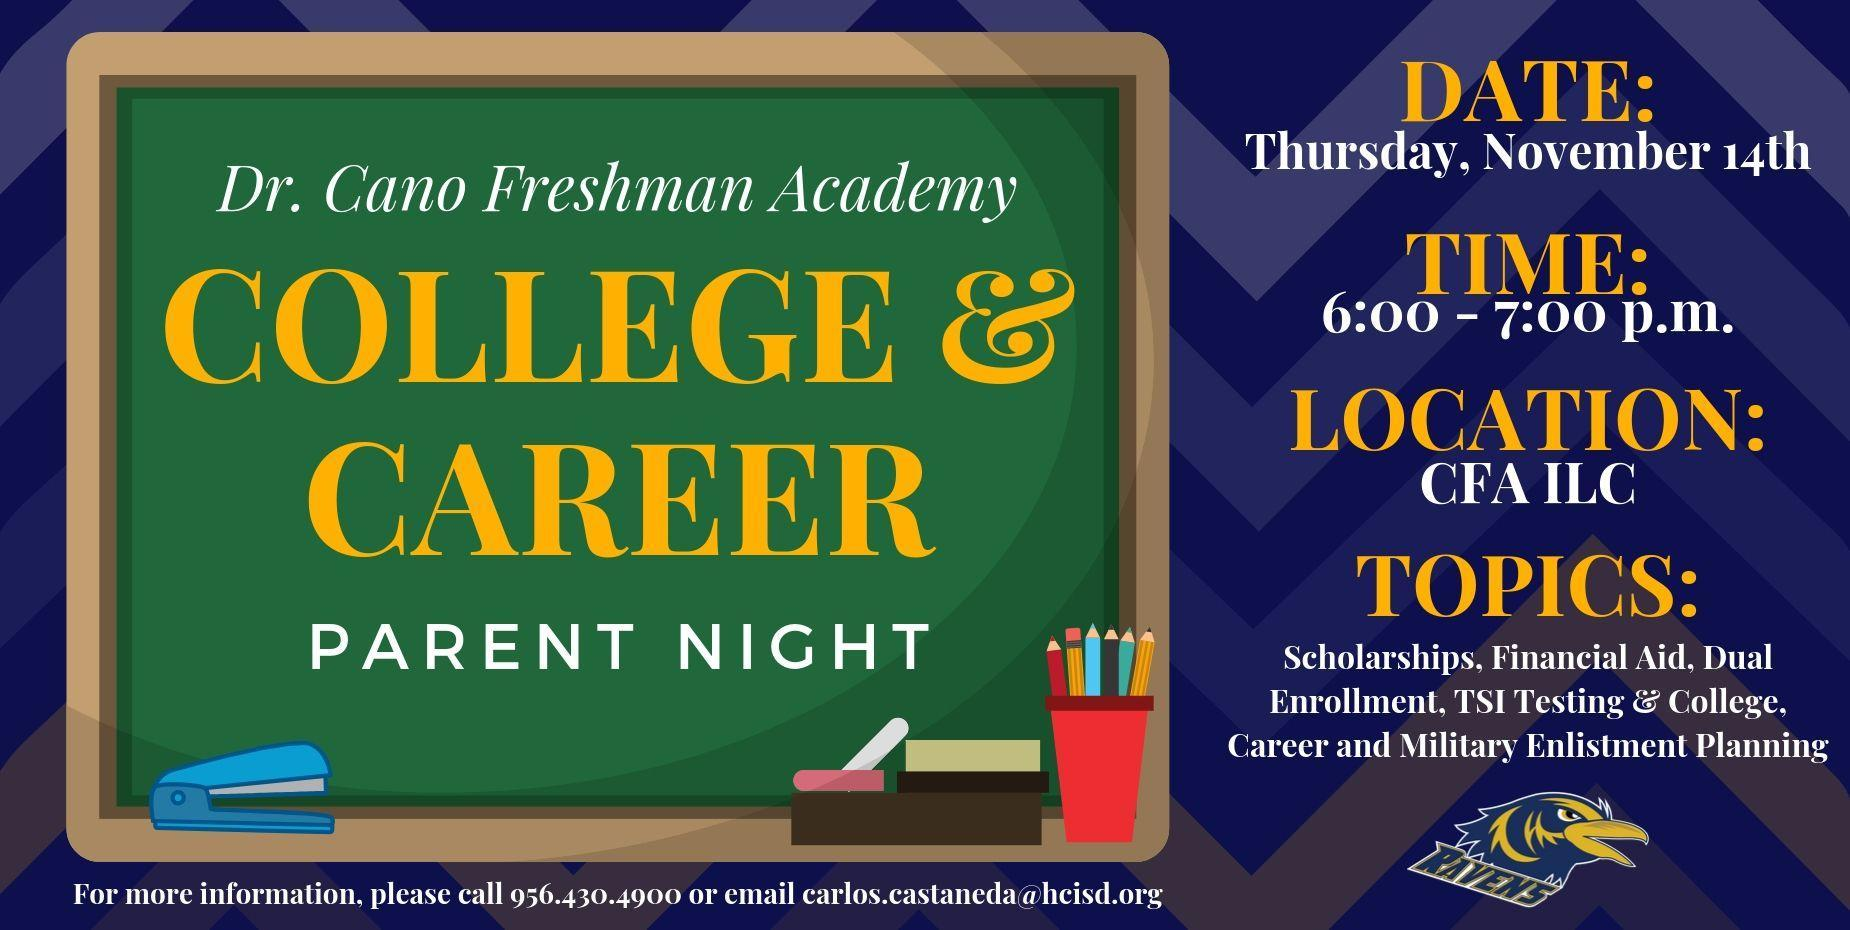 College and Career Parent Night Flyer